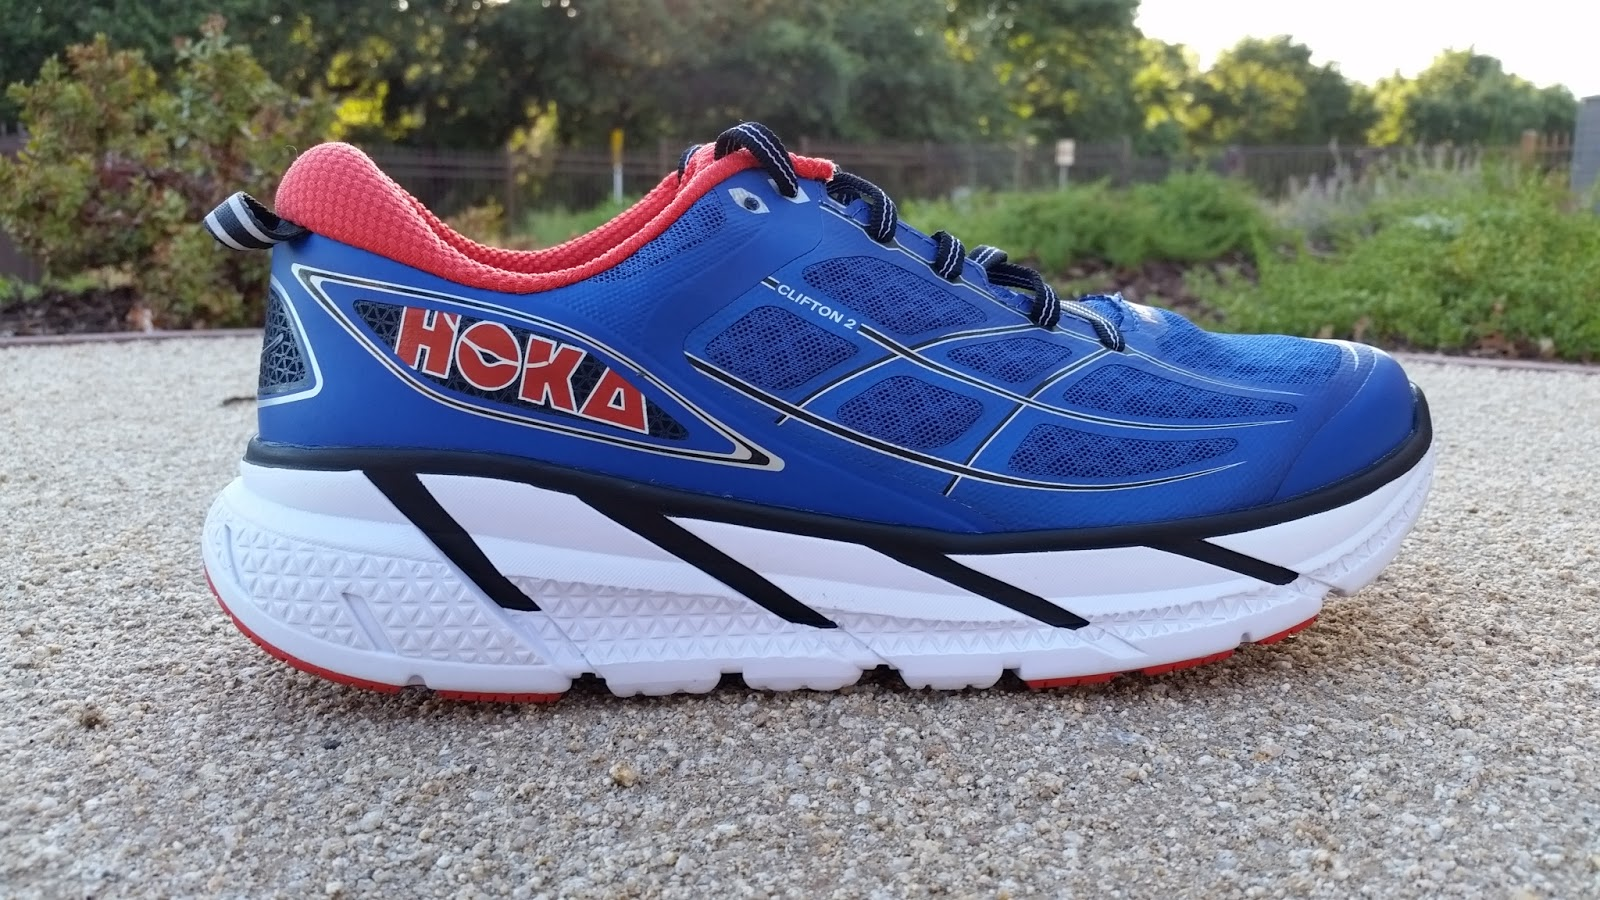 Hoka shoes trail running